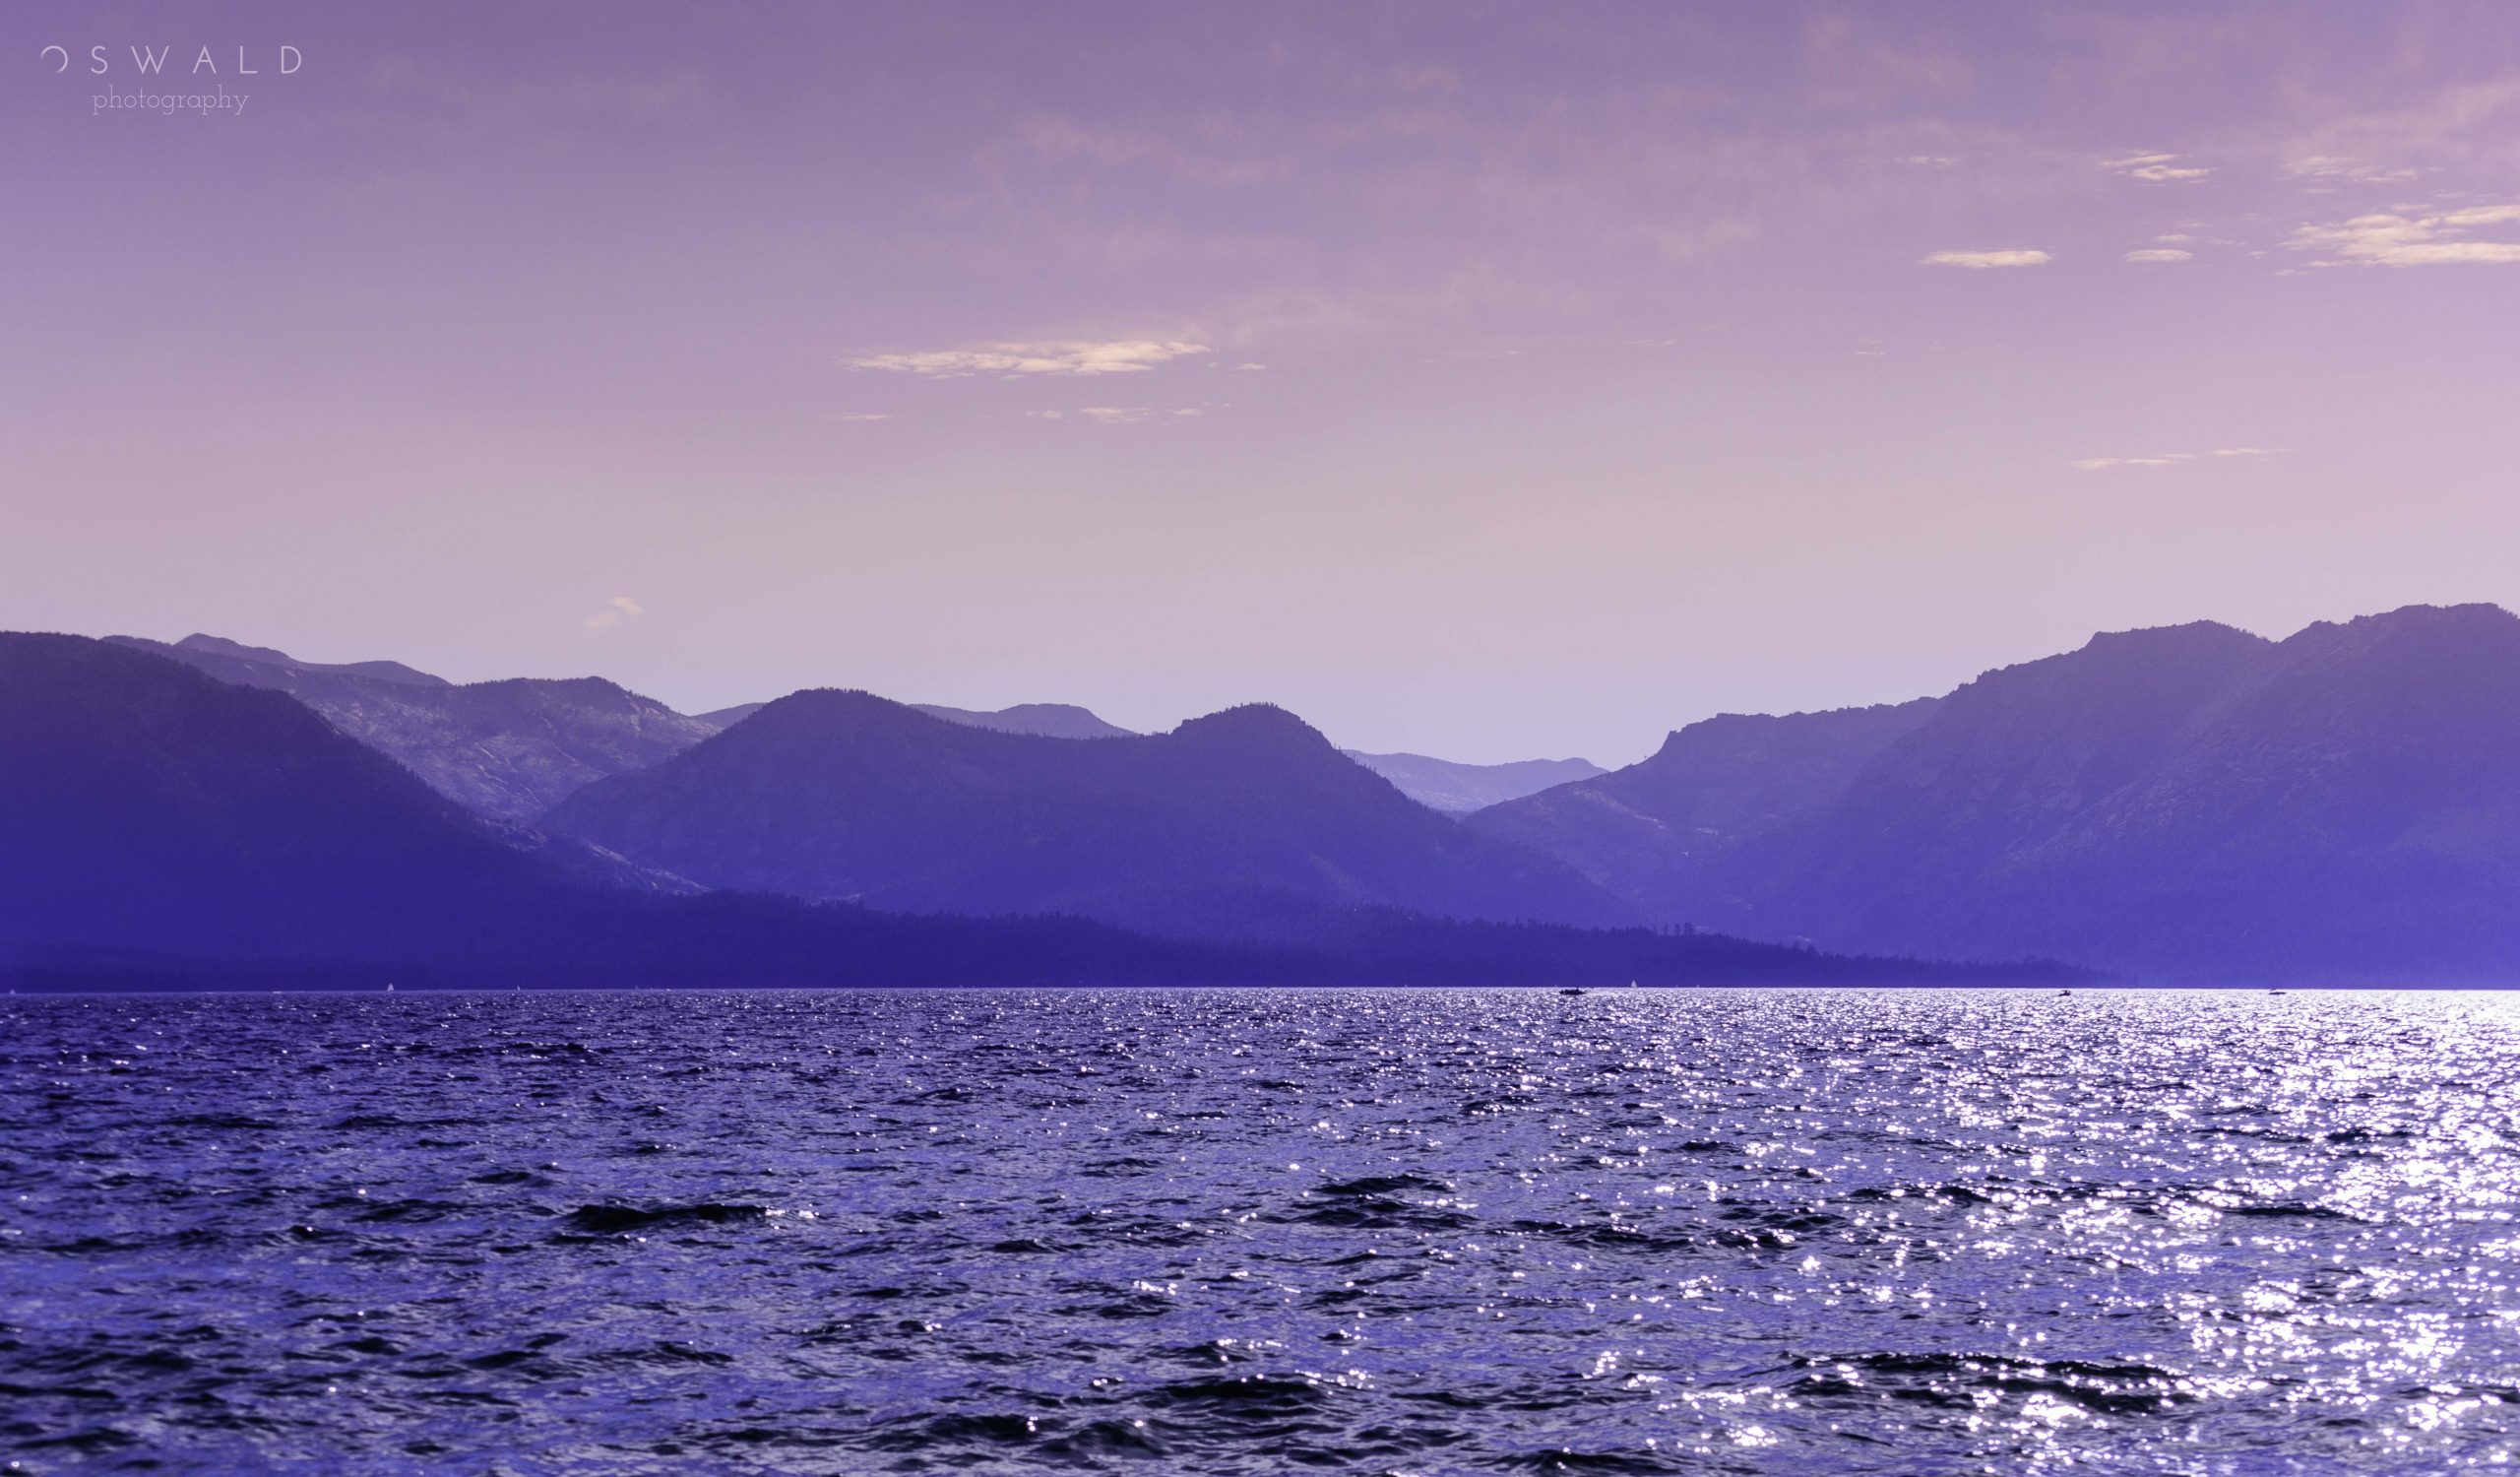 A landscape photograph of Scotland's Loch Ness as taken from a boat in the middle of the Loch,